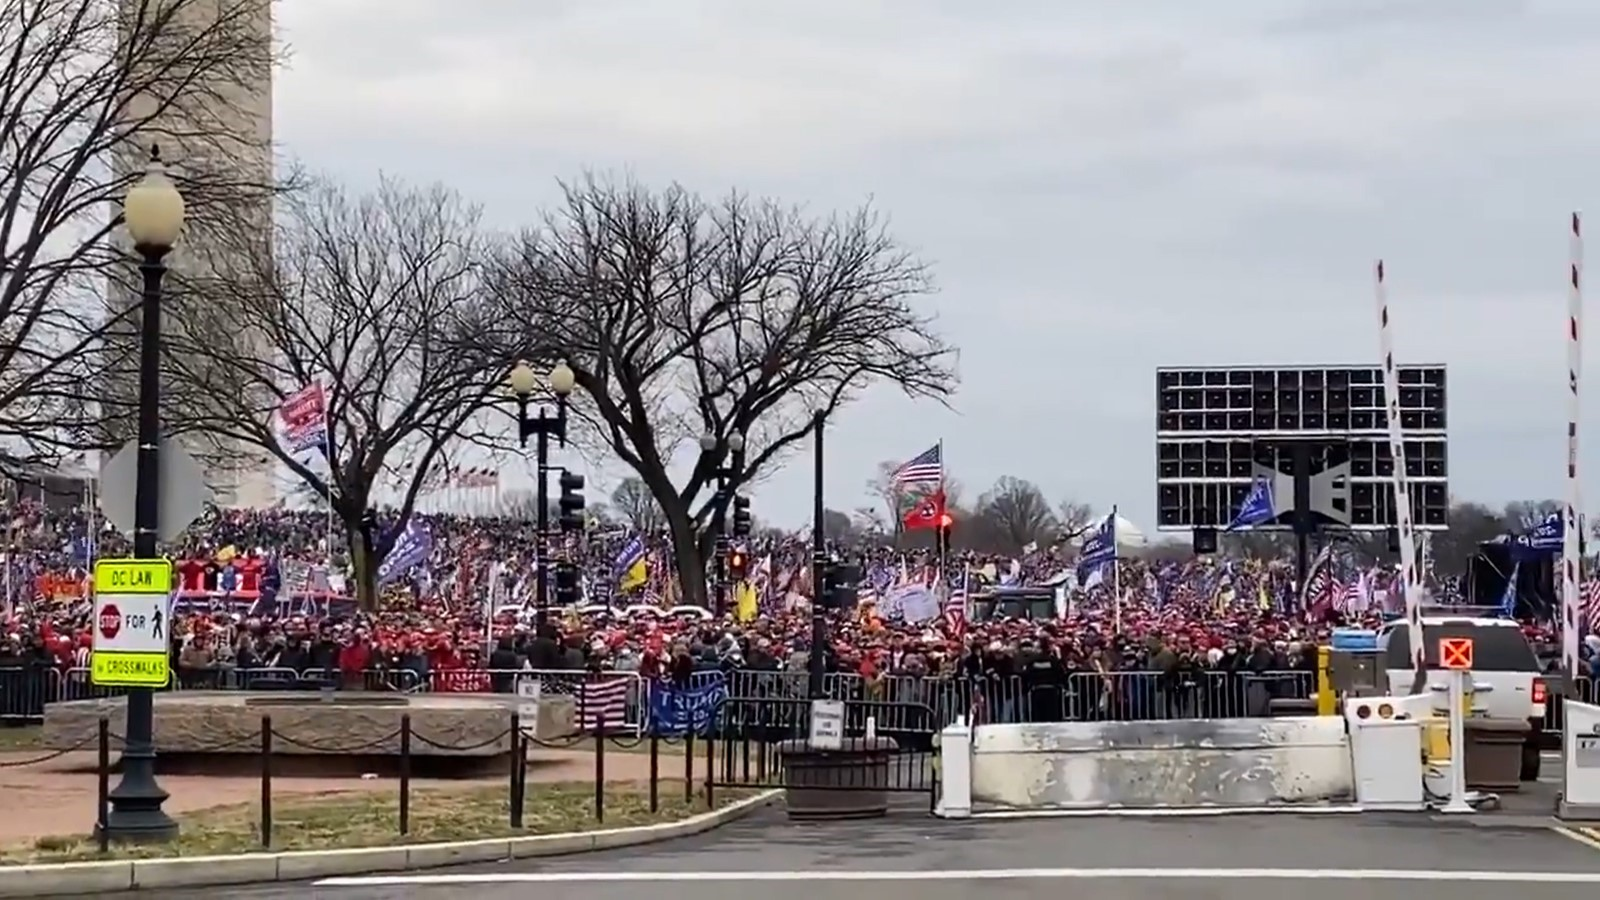 Thousands Of Trump Supporters Gather In D.C